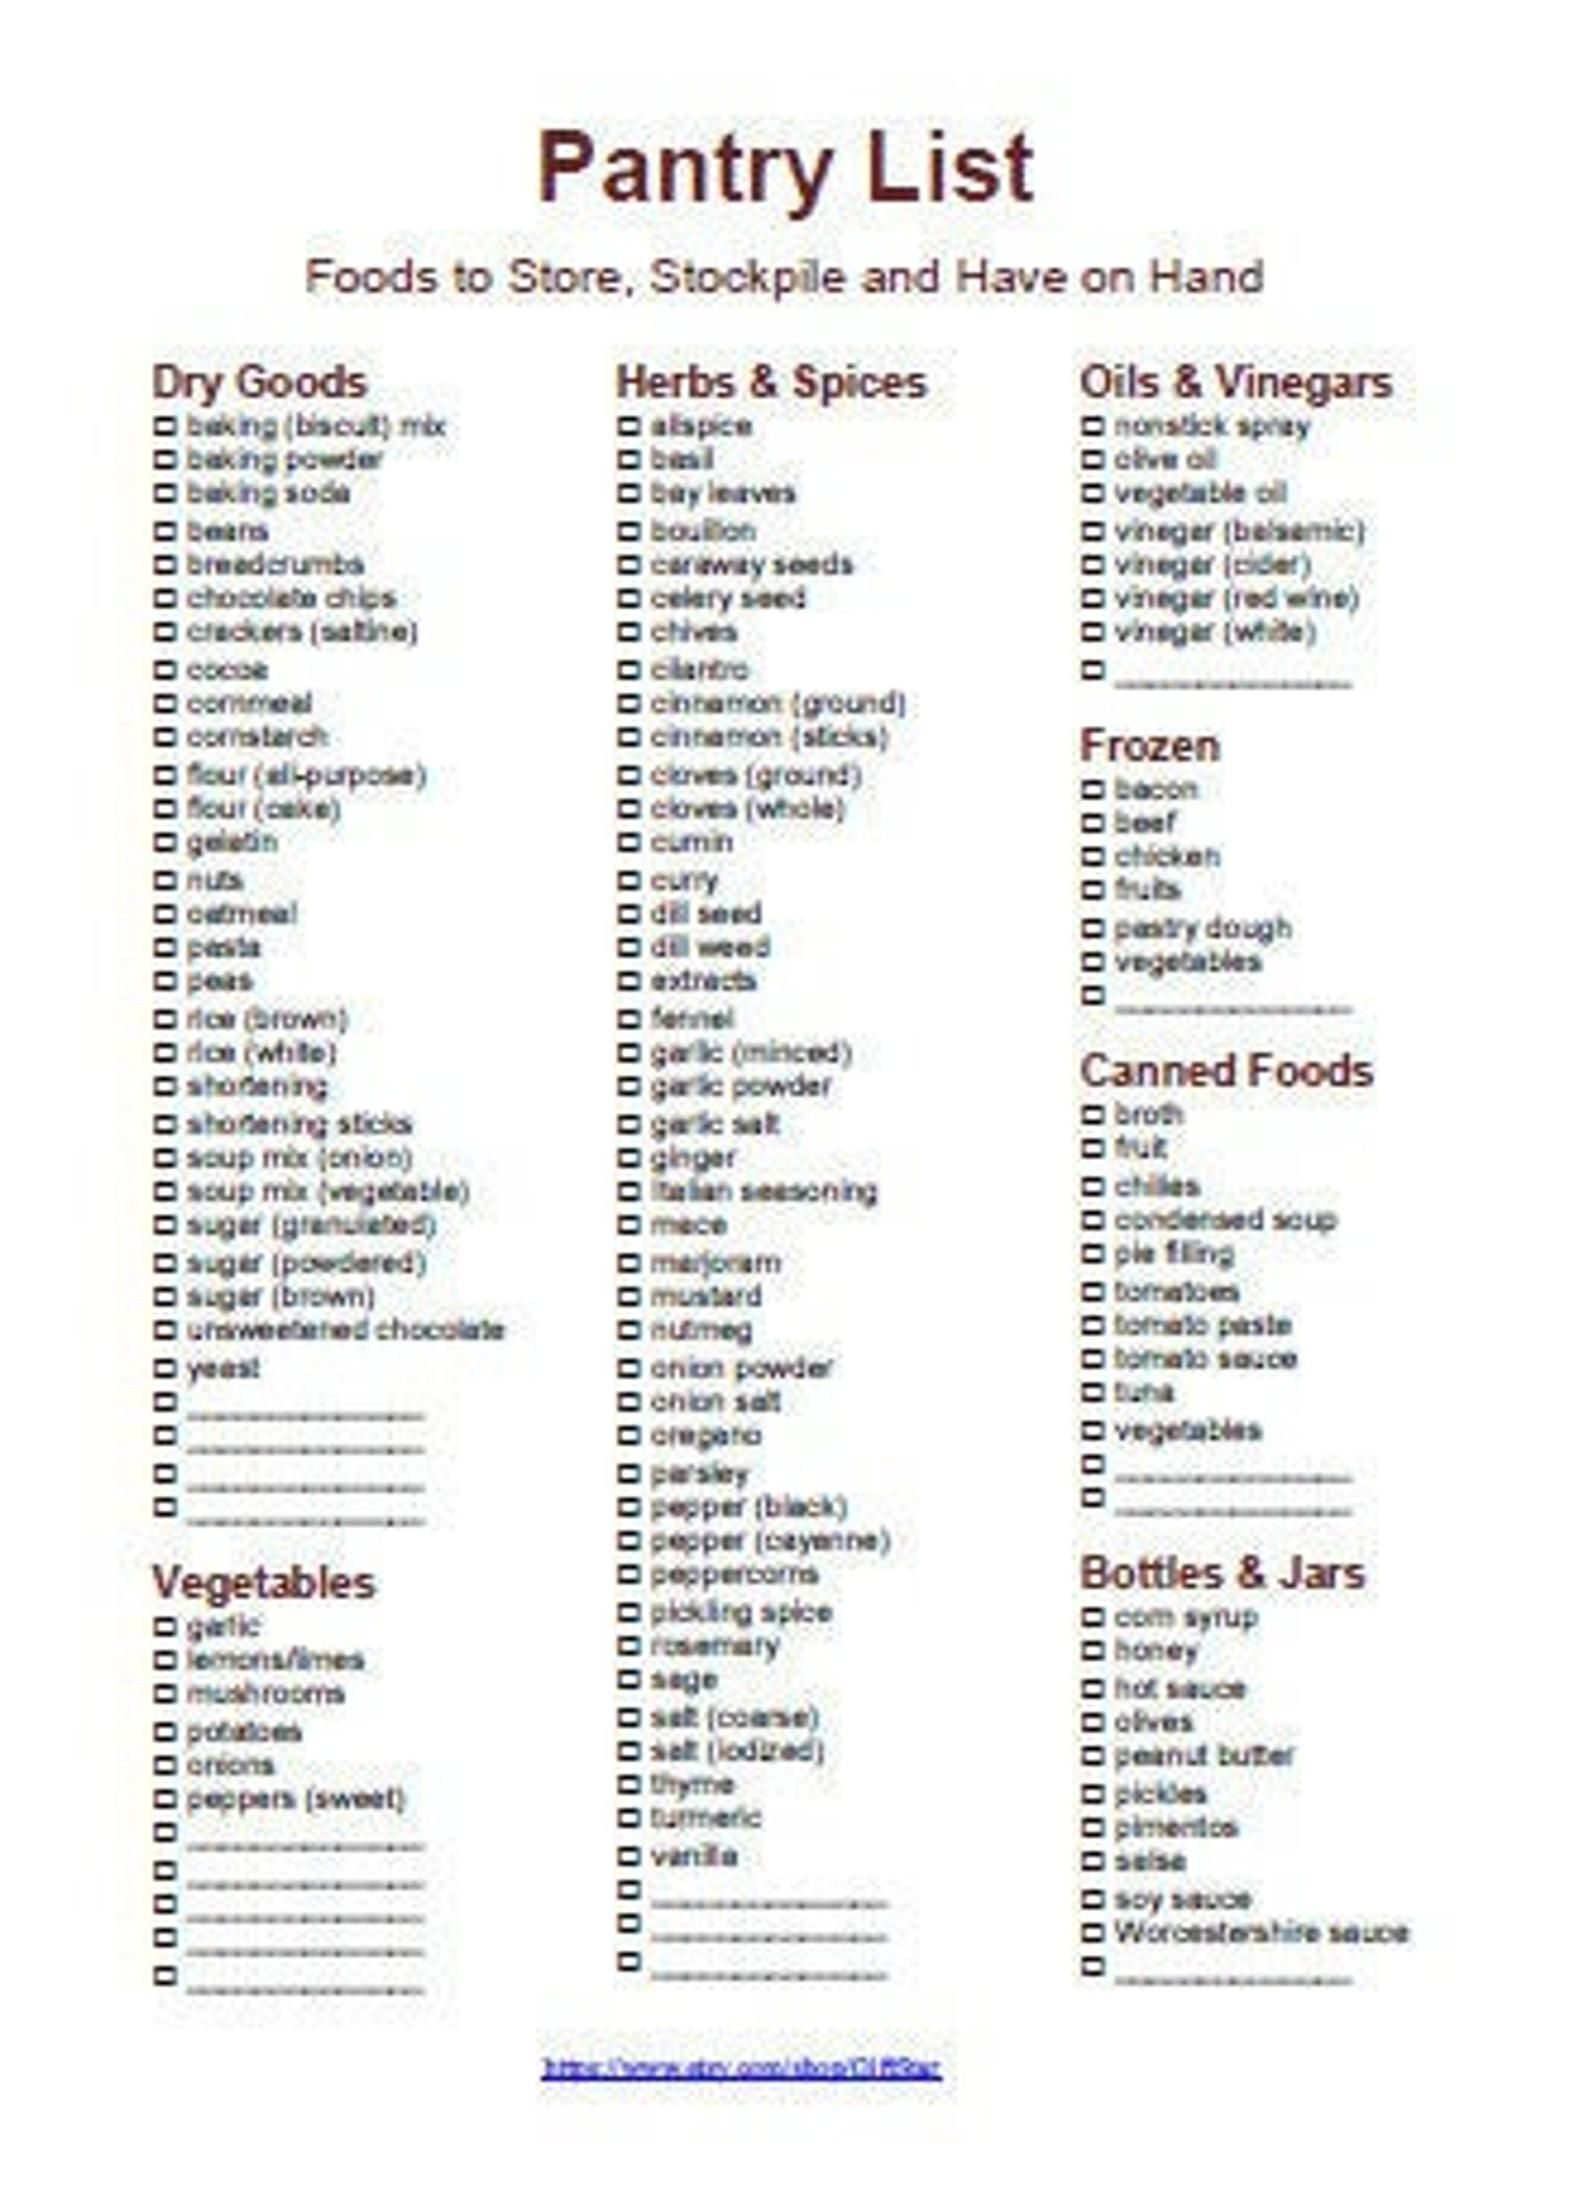 Pantry Grocery Shopping Stockpile List Printable Pdf In 2020 Pantry List Shopping List Grocery Grocery